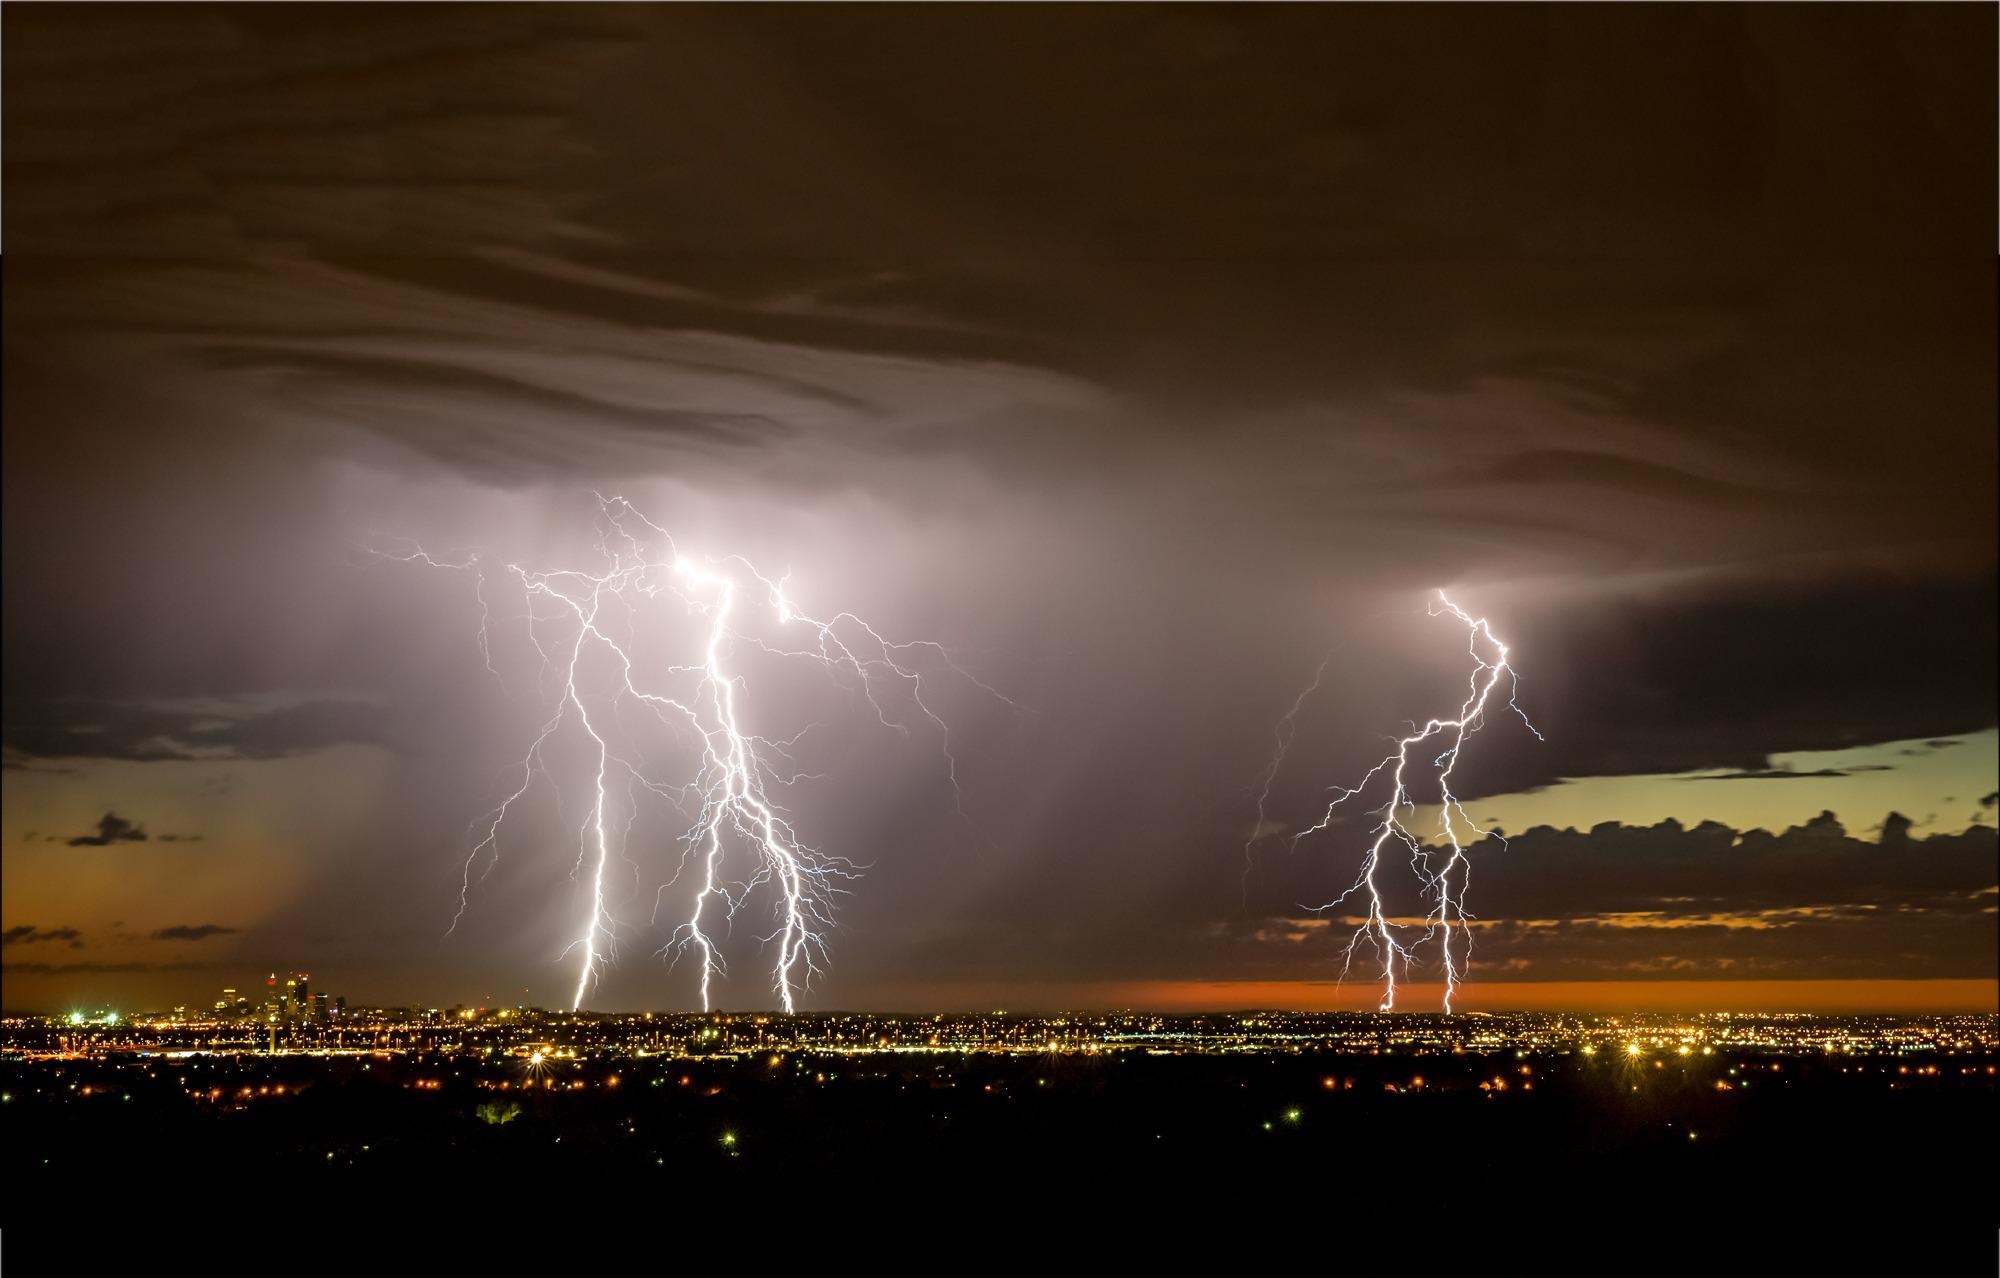 Increased Lightning Storms may Amplify Arctic Warming